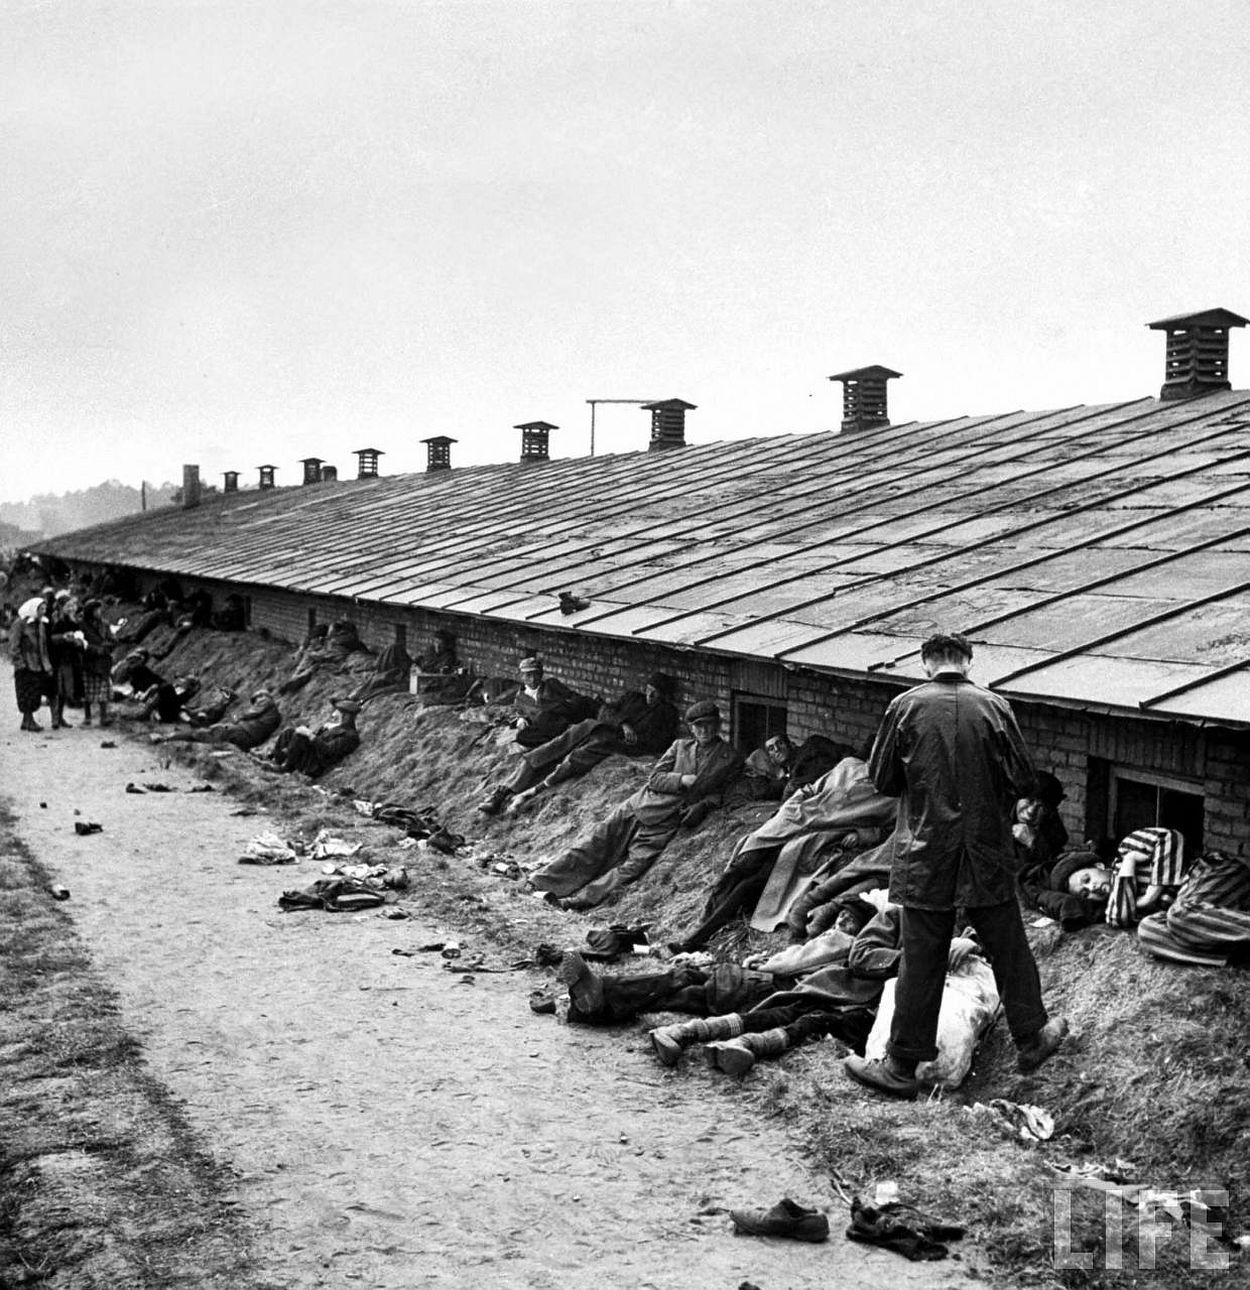 Weak and dying prisoners stretch out on dirt bank behind Bergen Belsen barracks after the concentration camp was liberated by Allied troops.